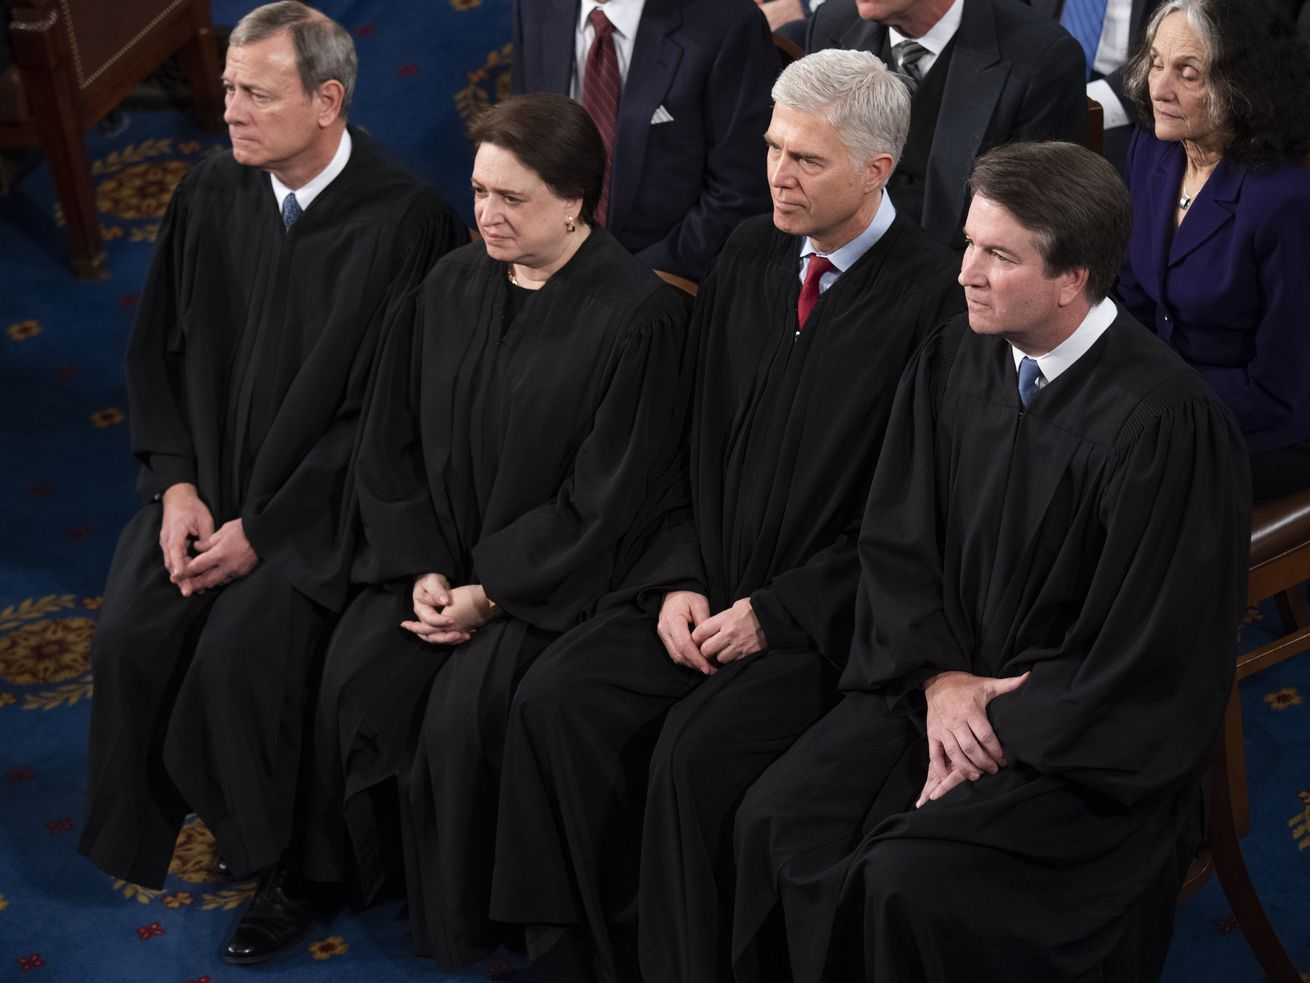 Chief Justice John Roberts and associate justices Elena Kagan, Neil Gorsuch, and Brett Kavanaugh at the State of the Union on February 4, 2020.